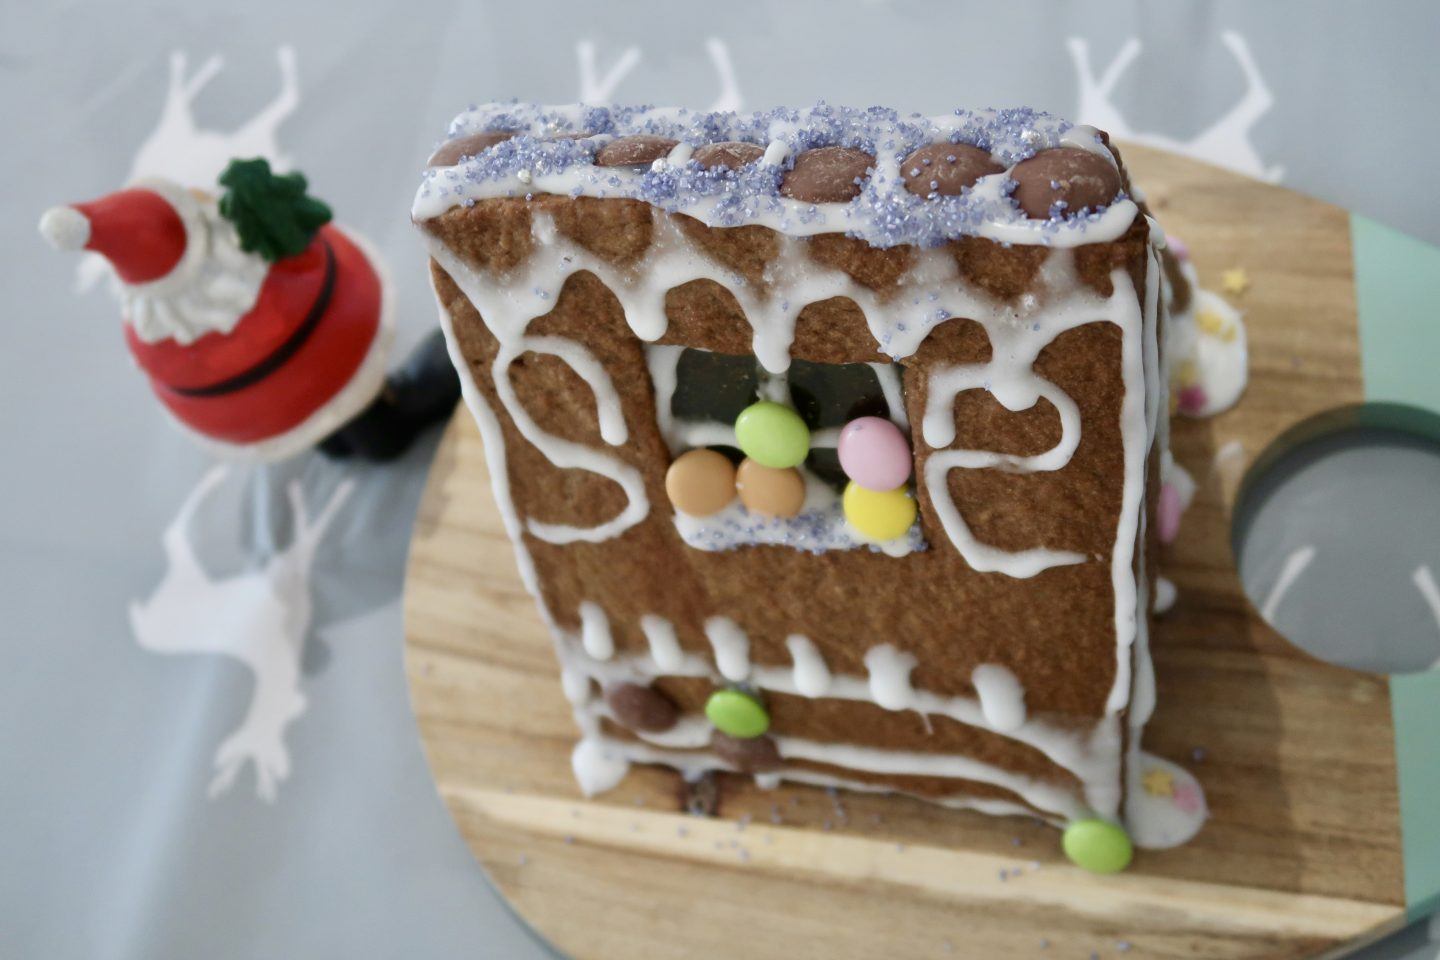 The back of a gingerbread house on a wooden board